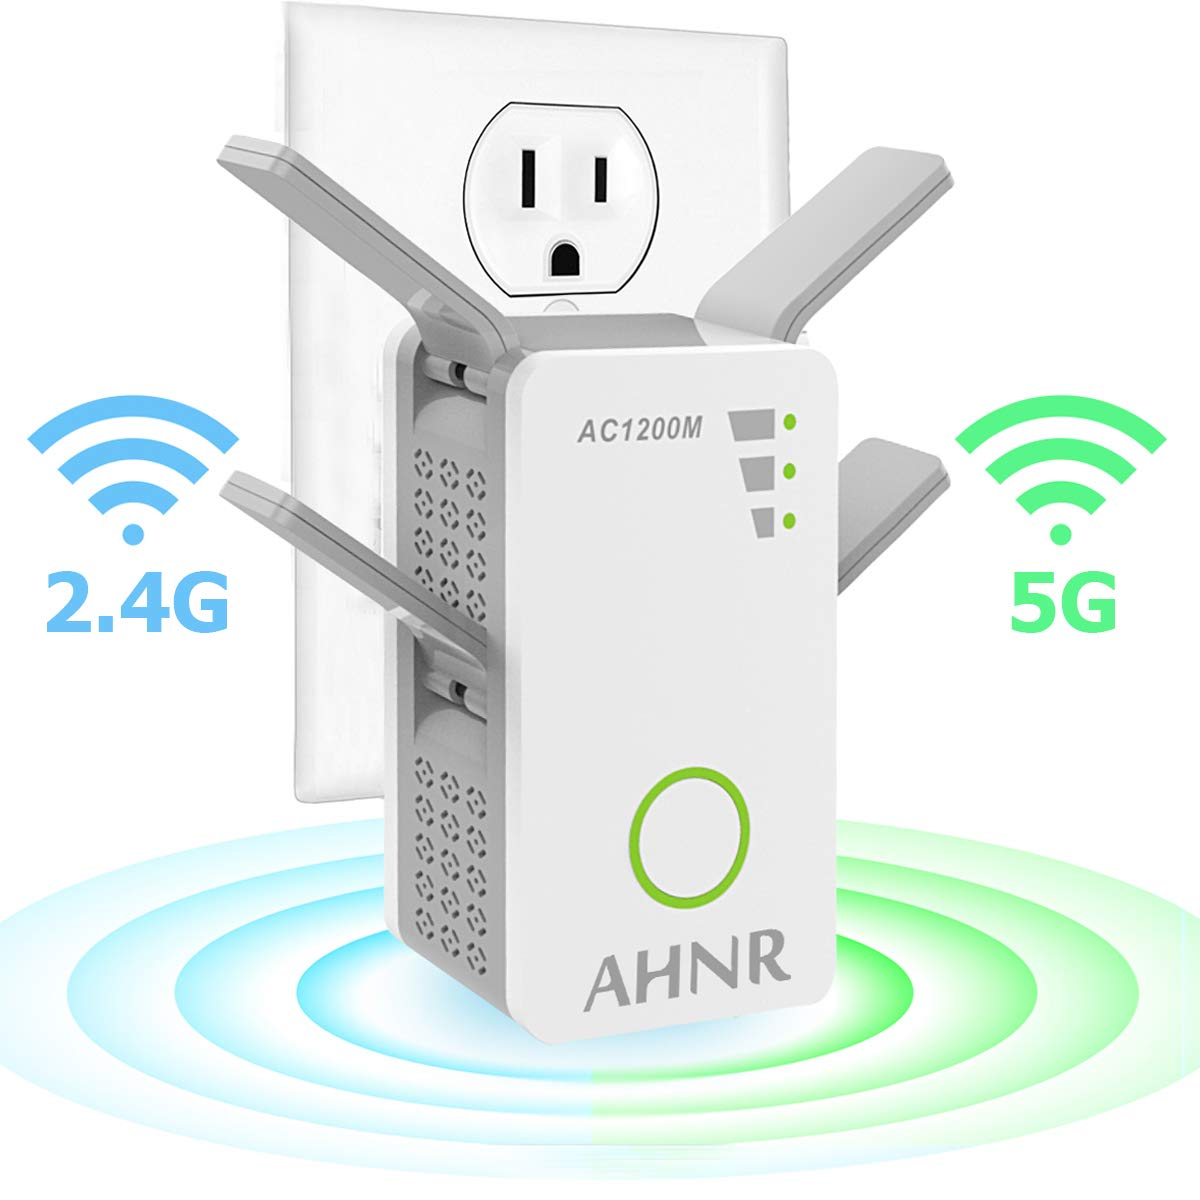 WiFi Range Extender, Wi-Fi Signal Booster, AHNR AC1200 Wireless Repeater 2.4/5GHz Dual Band Up to 1200 Mbps with 4 External Antennas, Supports Router Mode/Repeater/Access Point